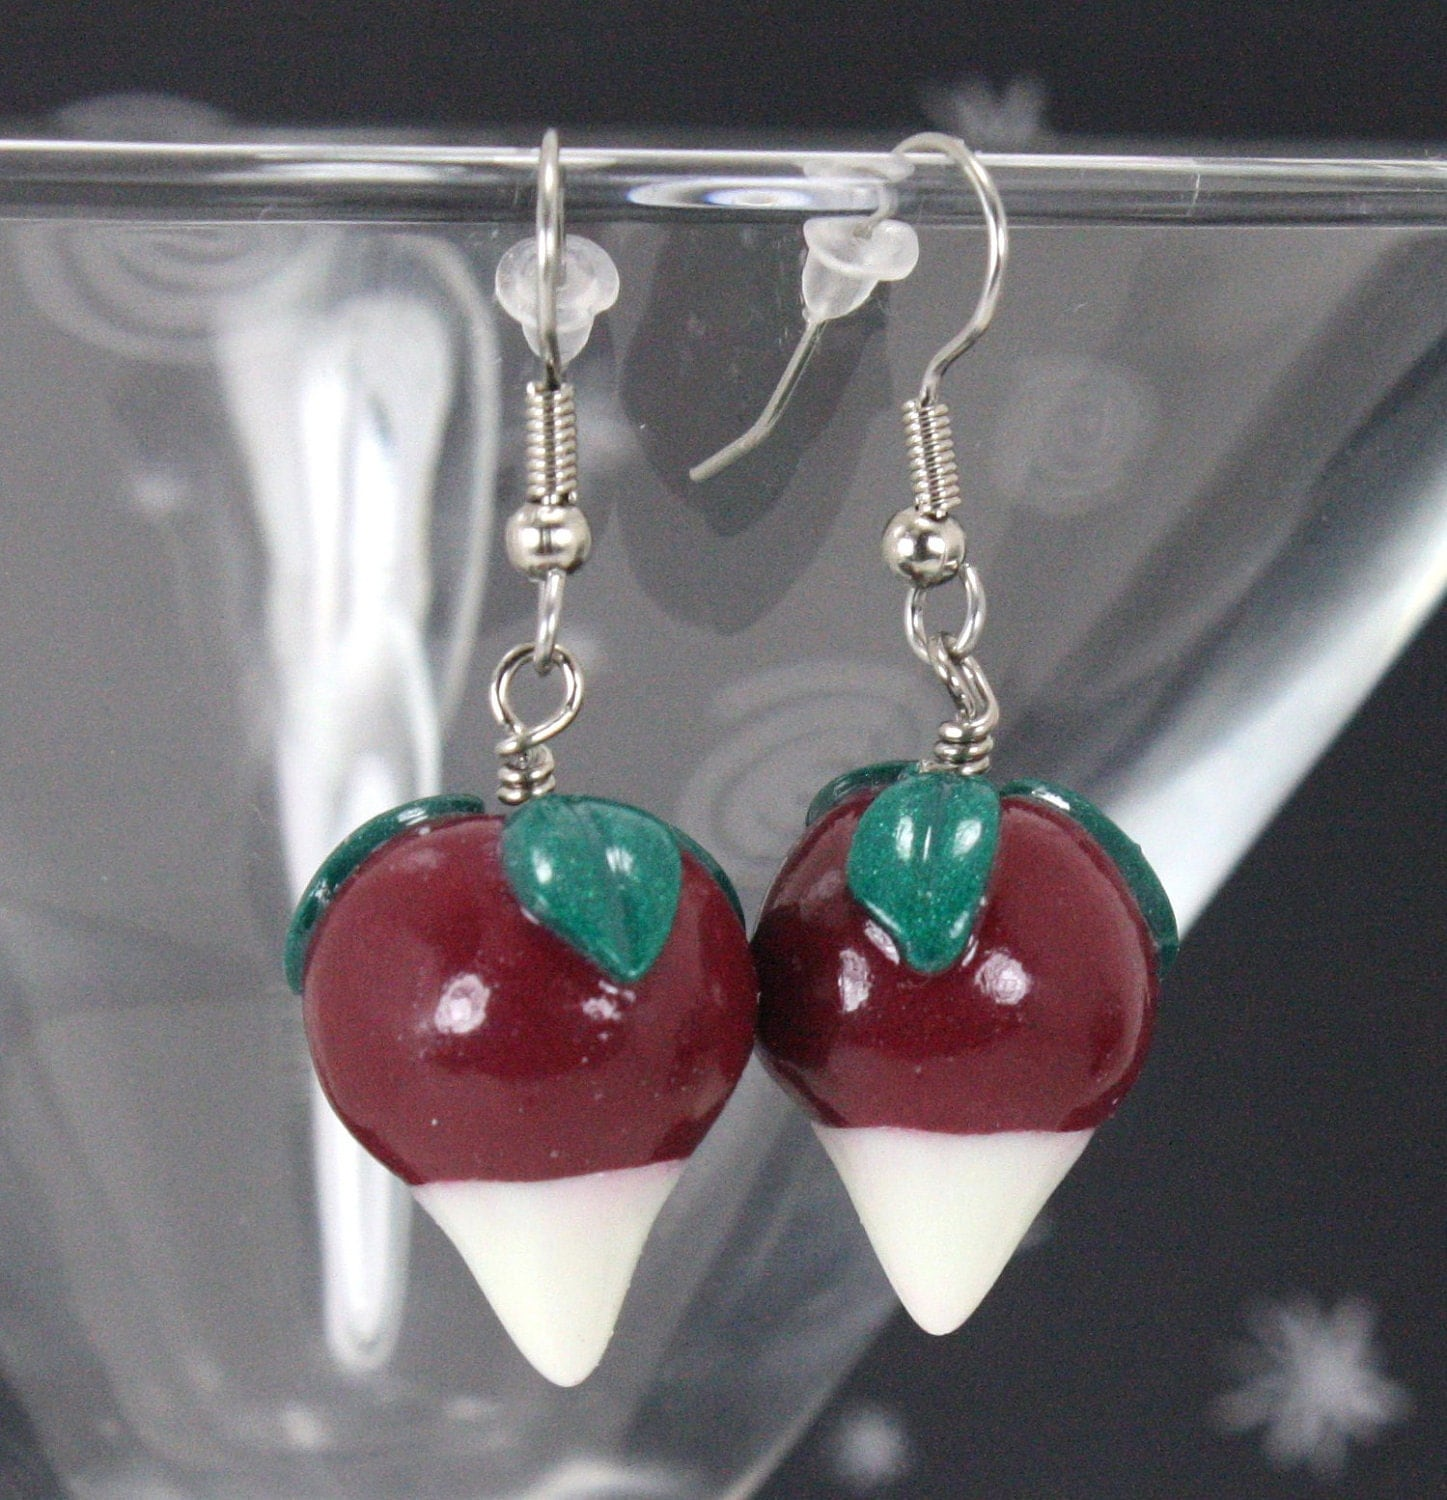 radish earrings radish earrings dirigible plum earrings glow in the 9967